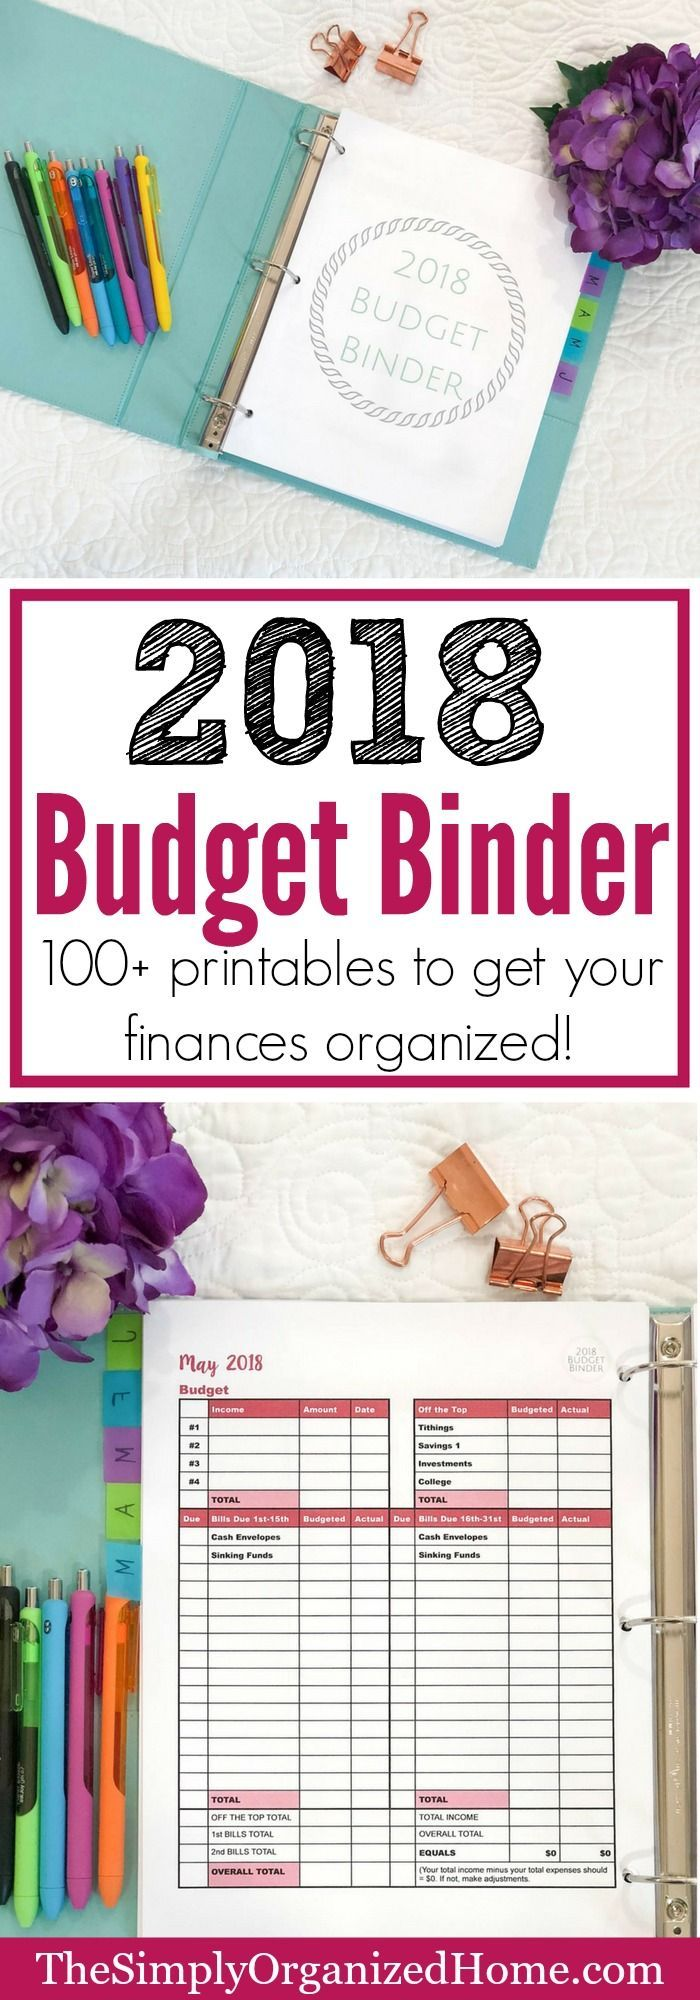 Are you tired of not knowing where your money is going? Finally take control of your finances with the 2018 budget binder! Grab yours here!